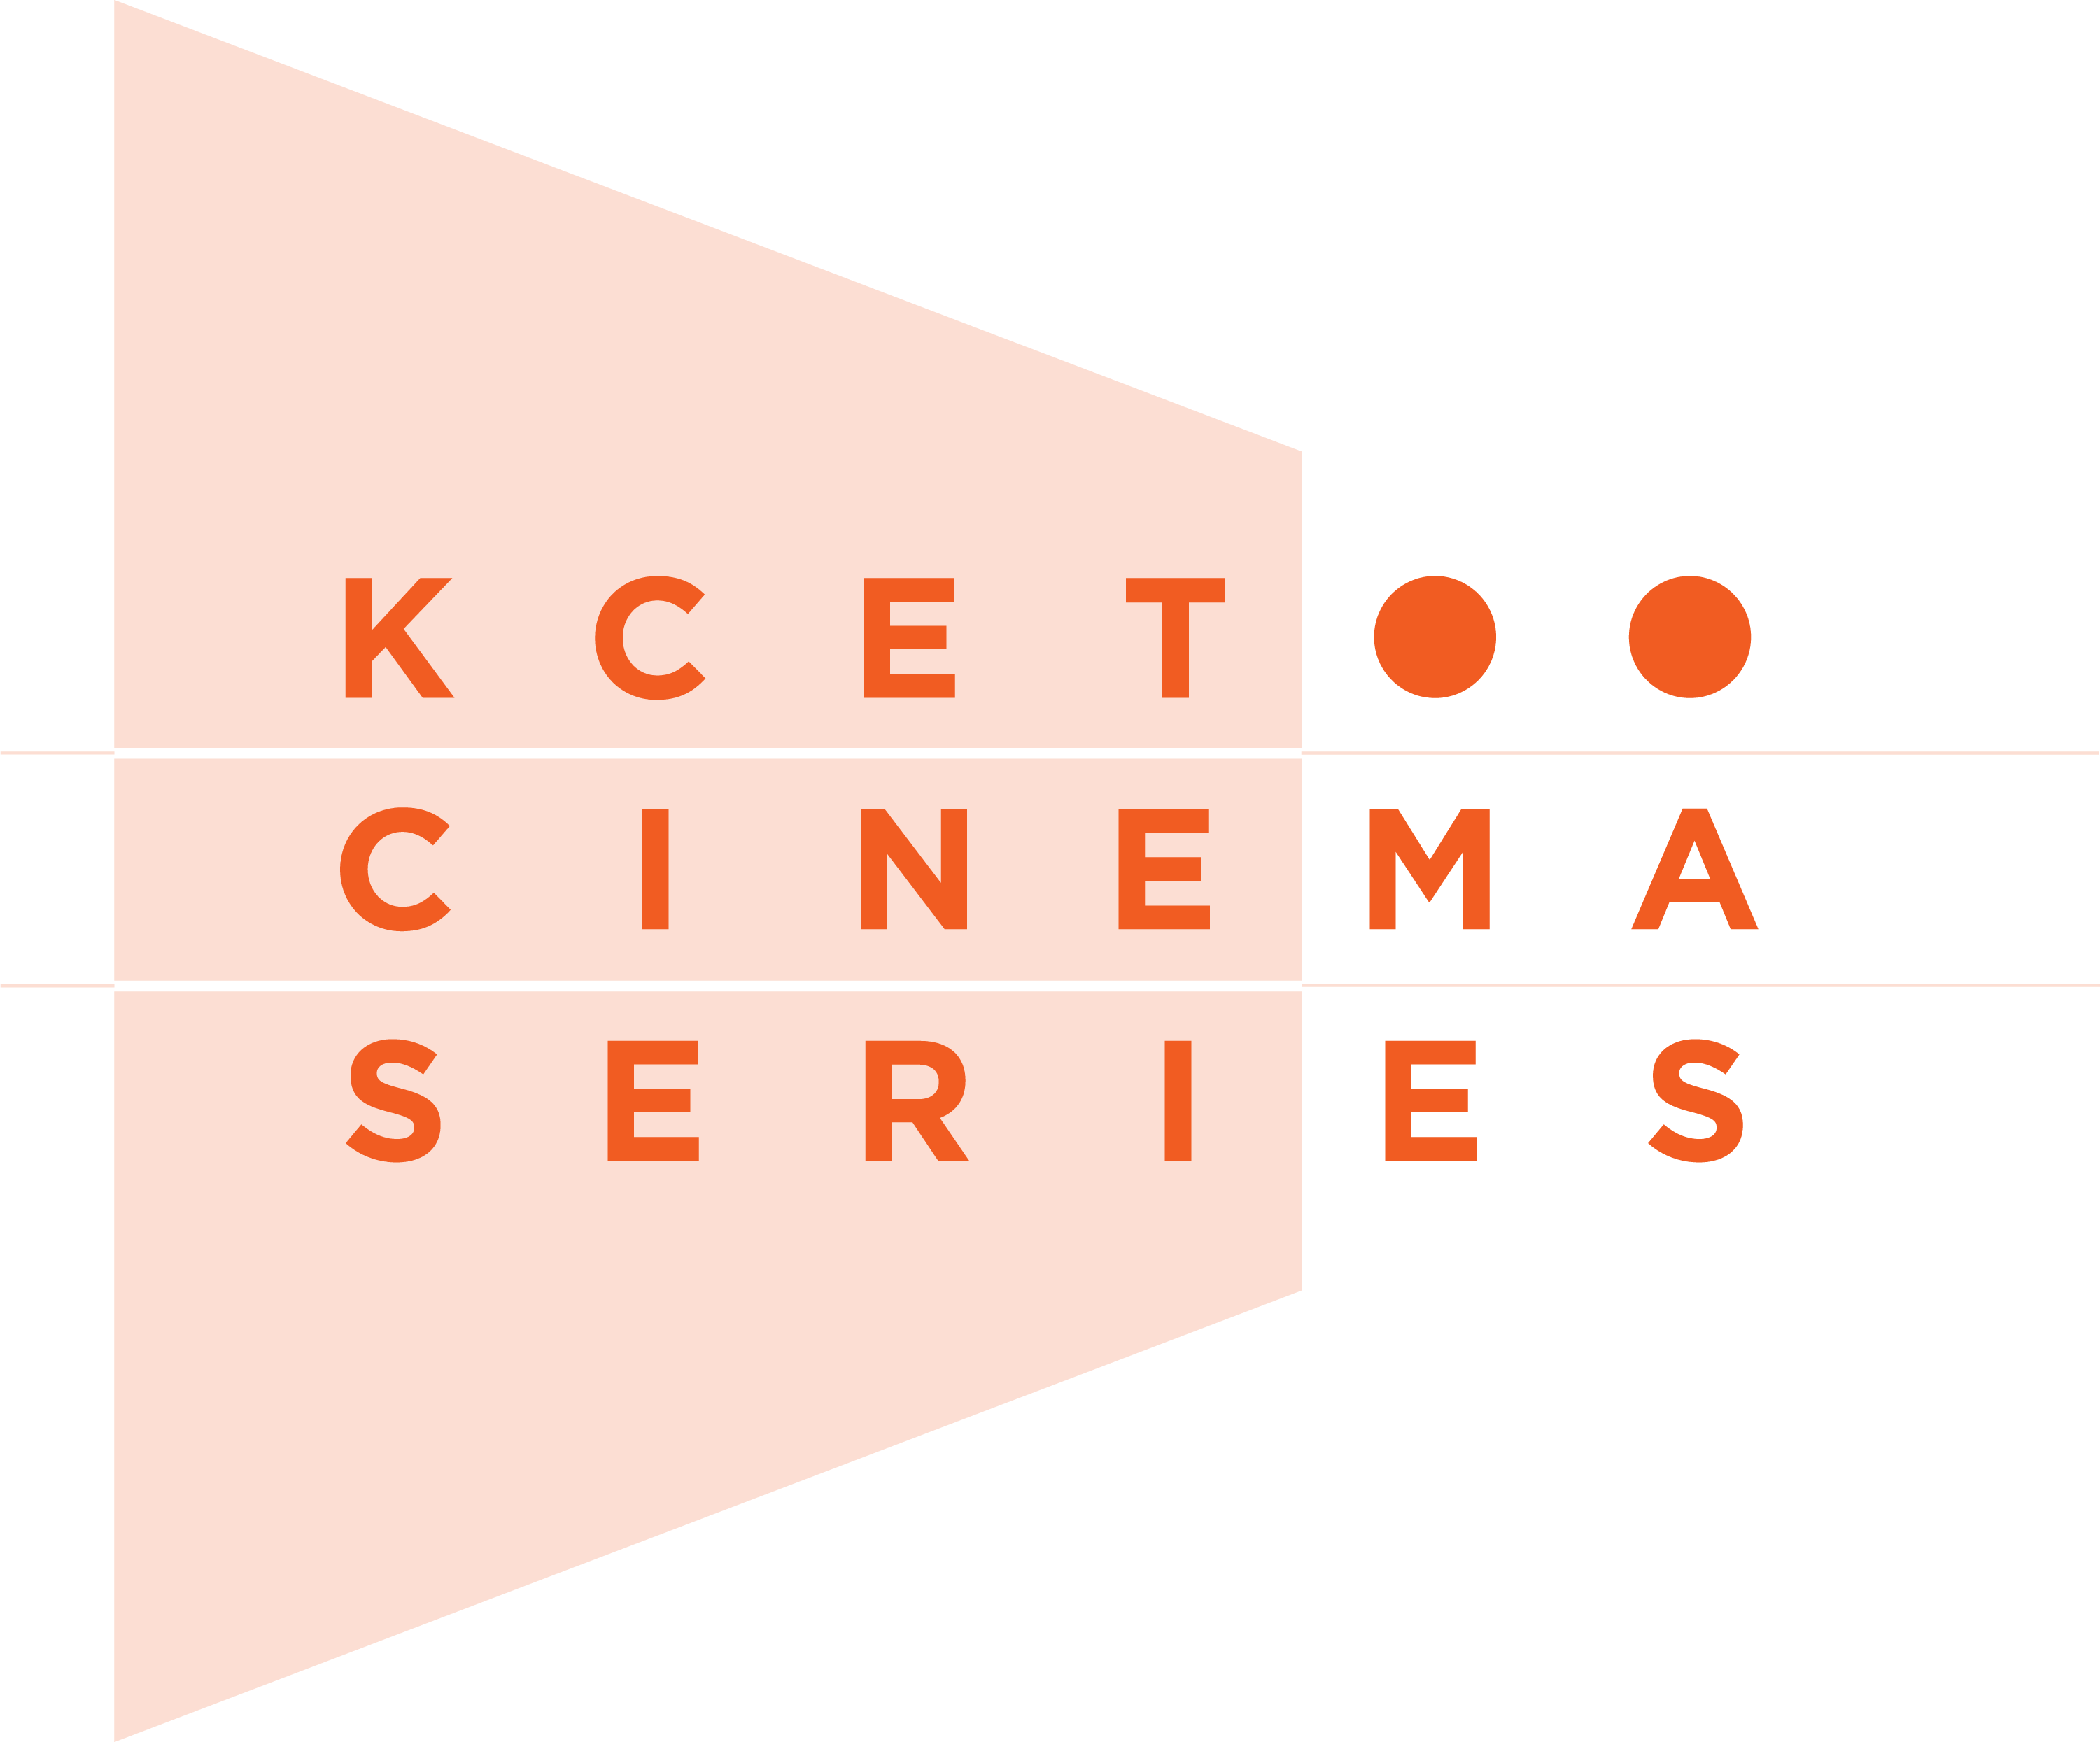 KCET Cinema Series